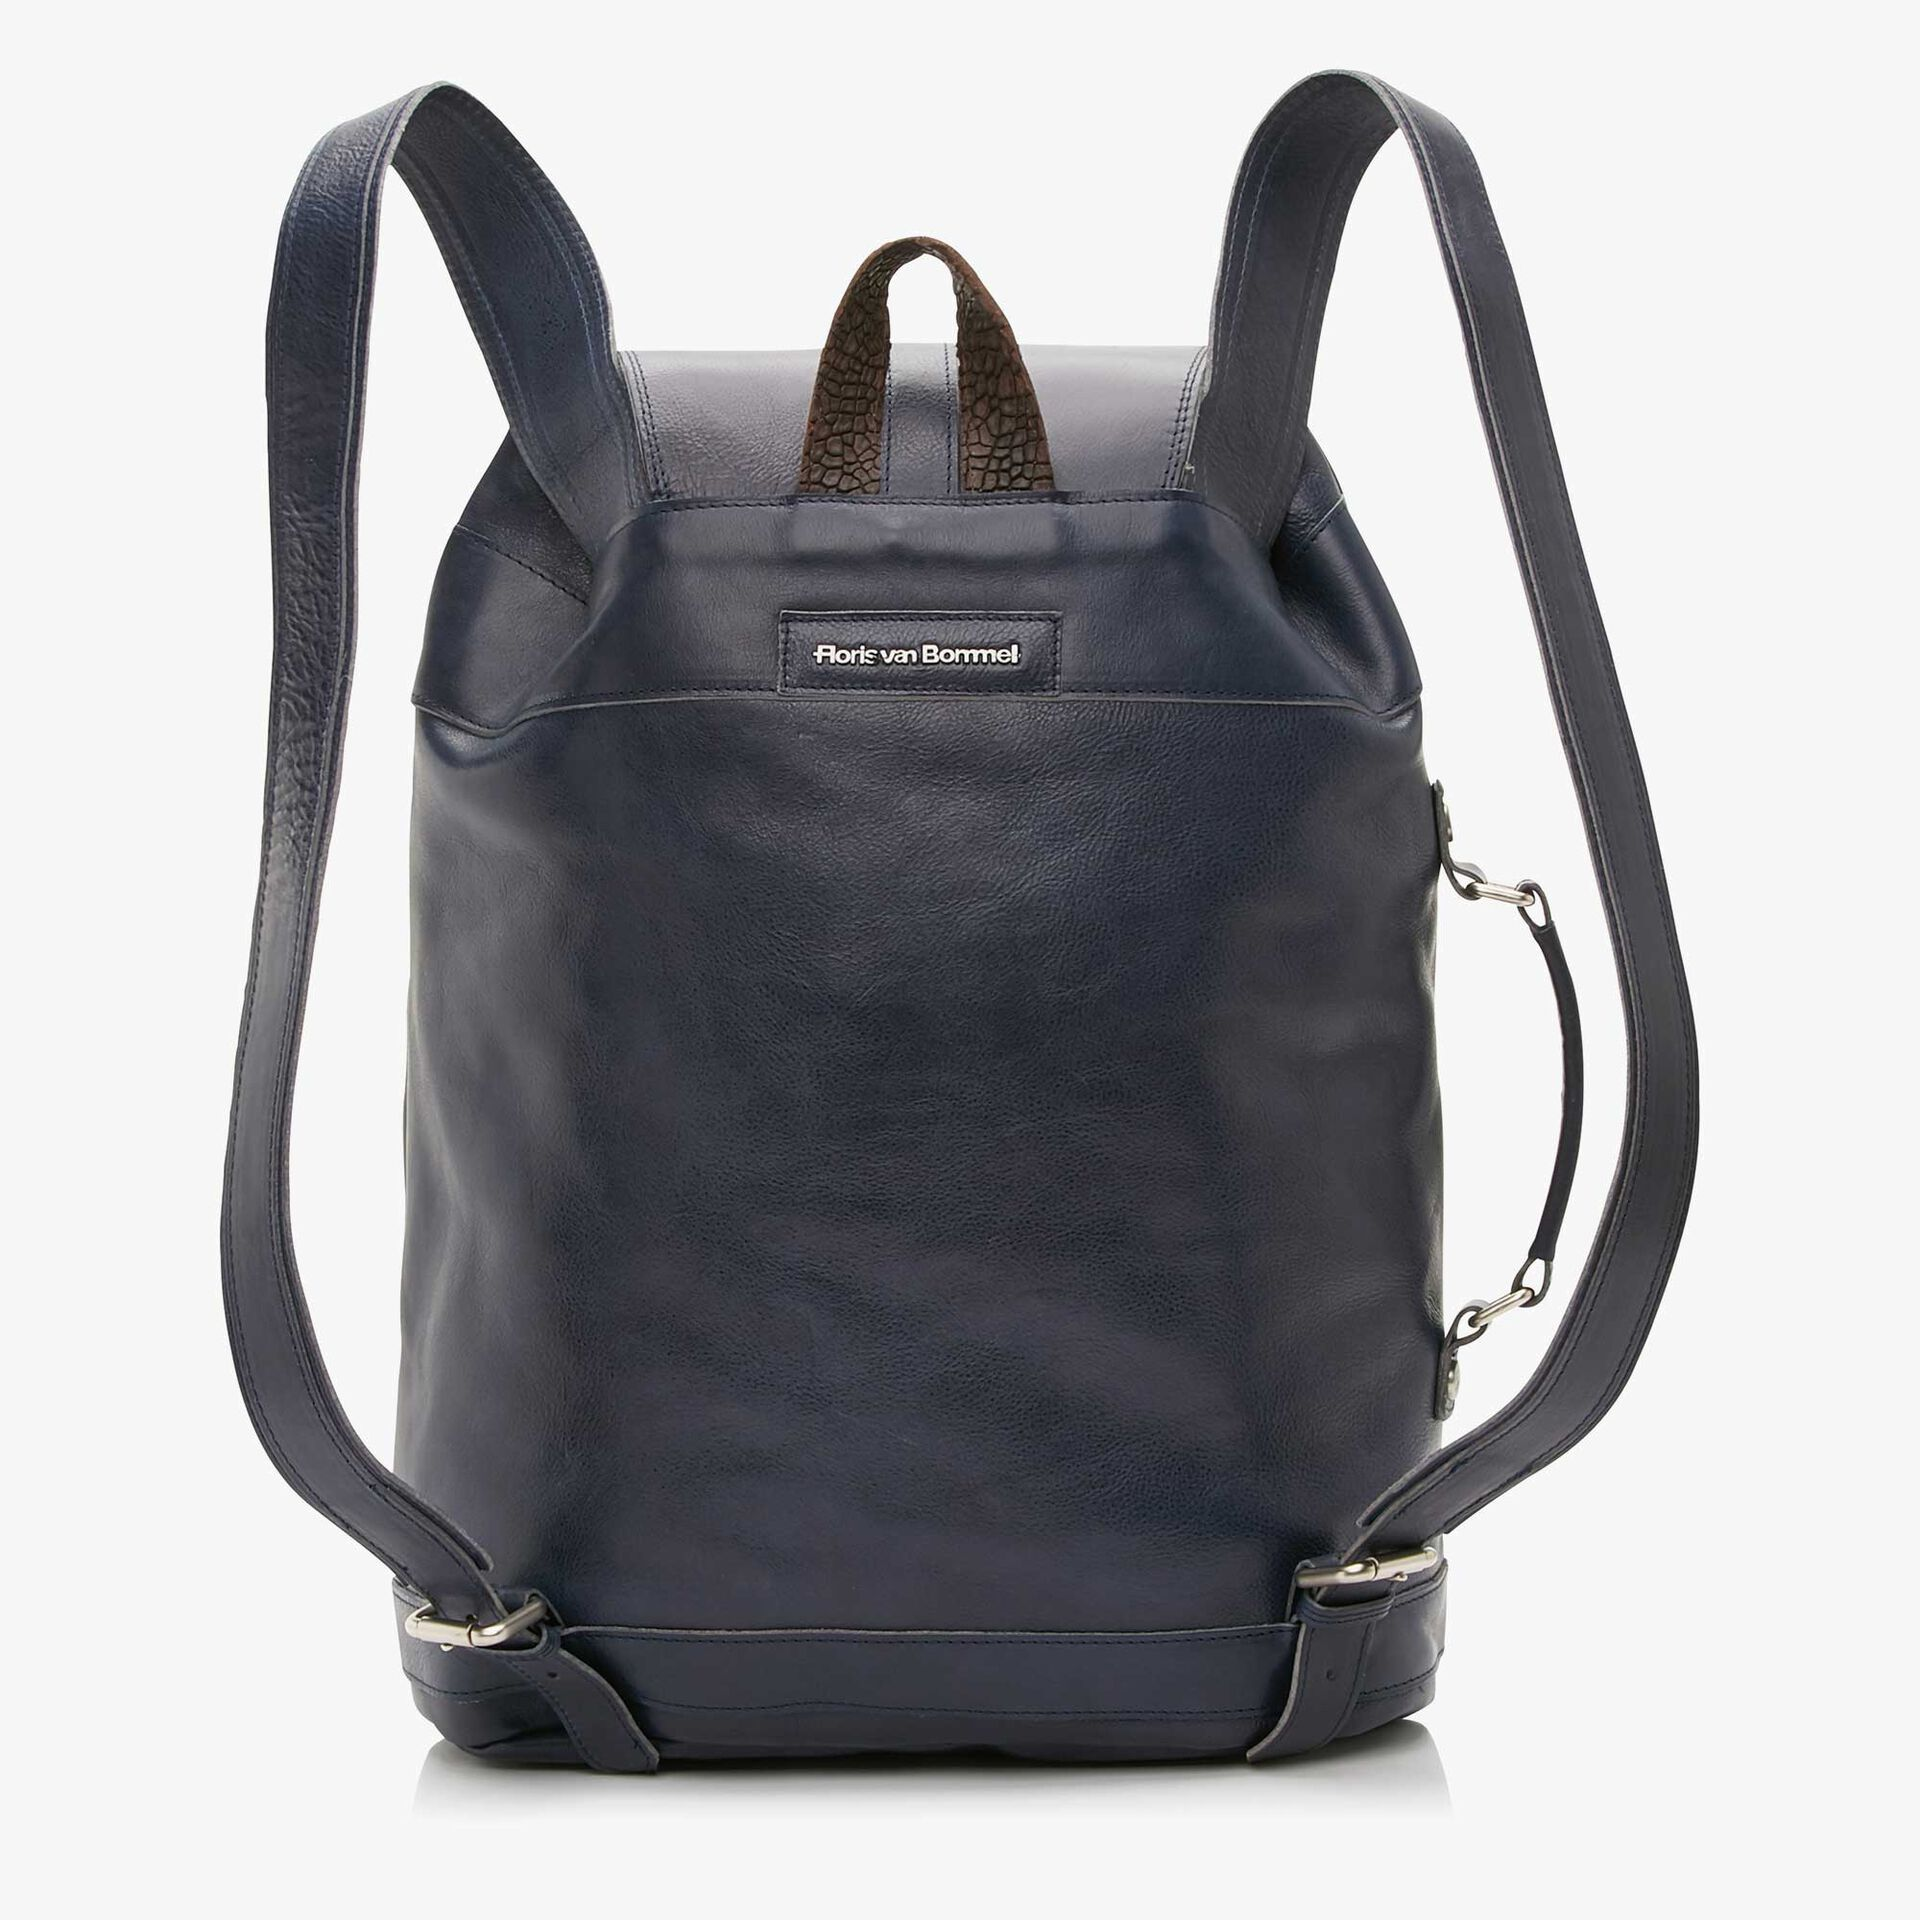 Floris van Bommel blue leather backpack